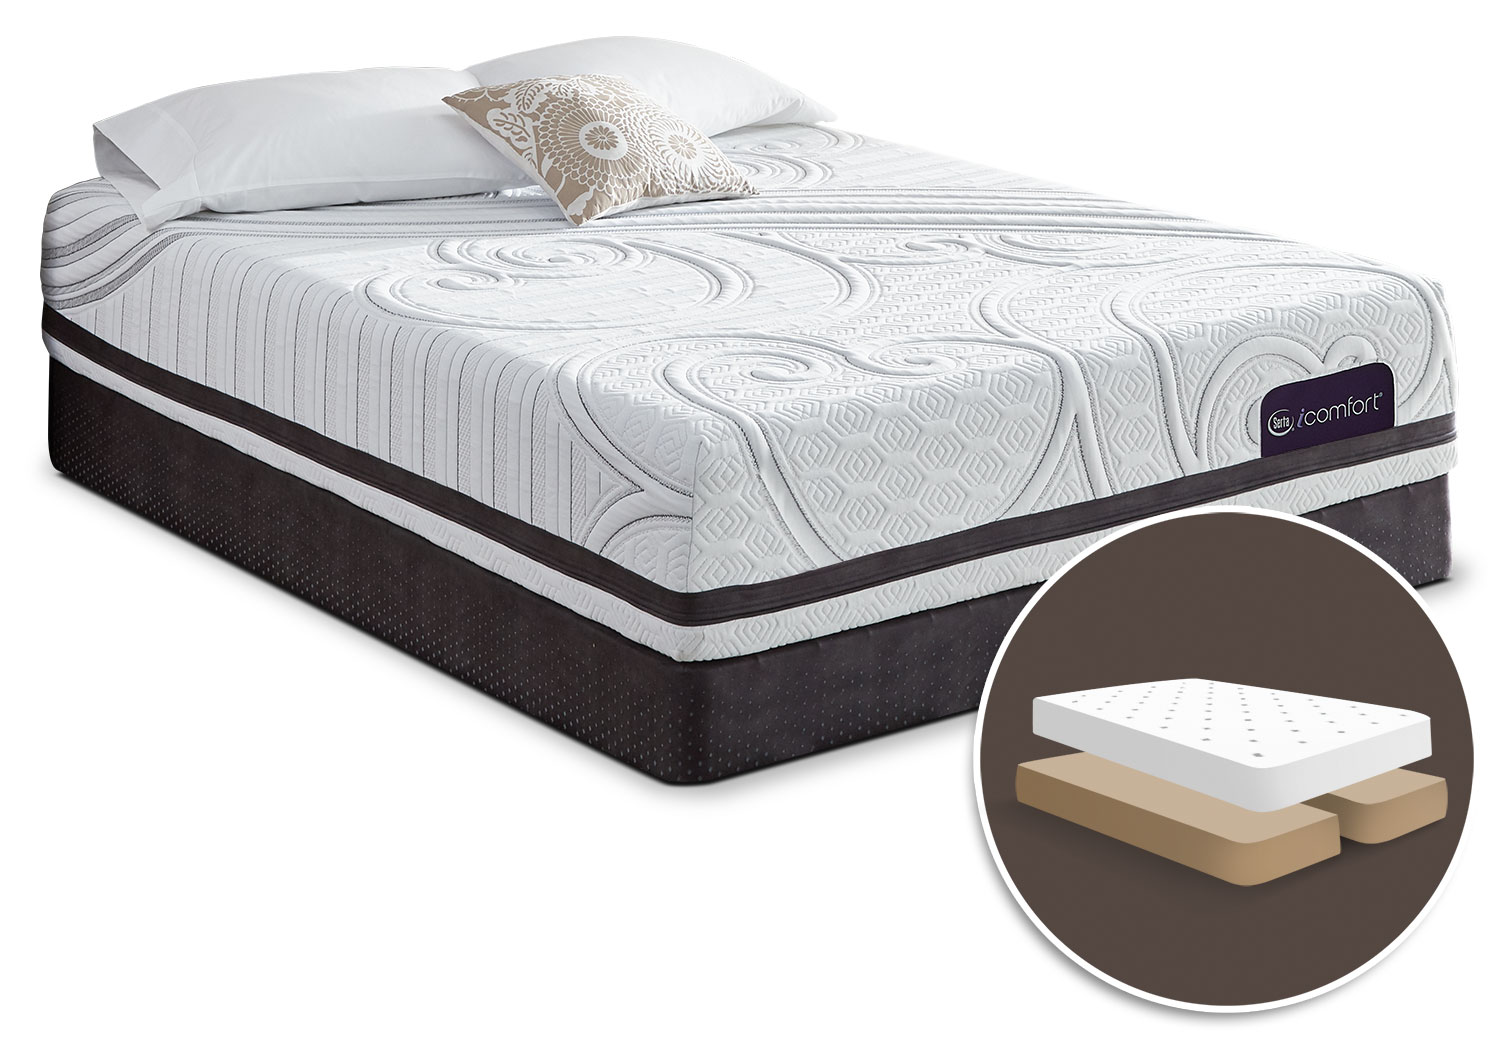 Mattresses and Bedding - Serta iComfort Visionary Firm 2 Queen Mattress with Split Boxspring Set